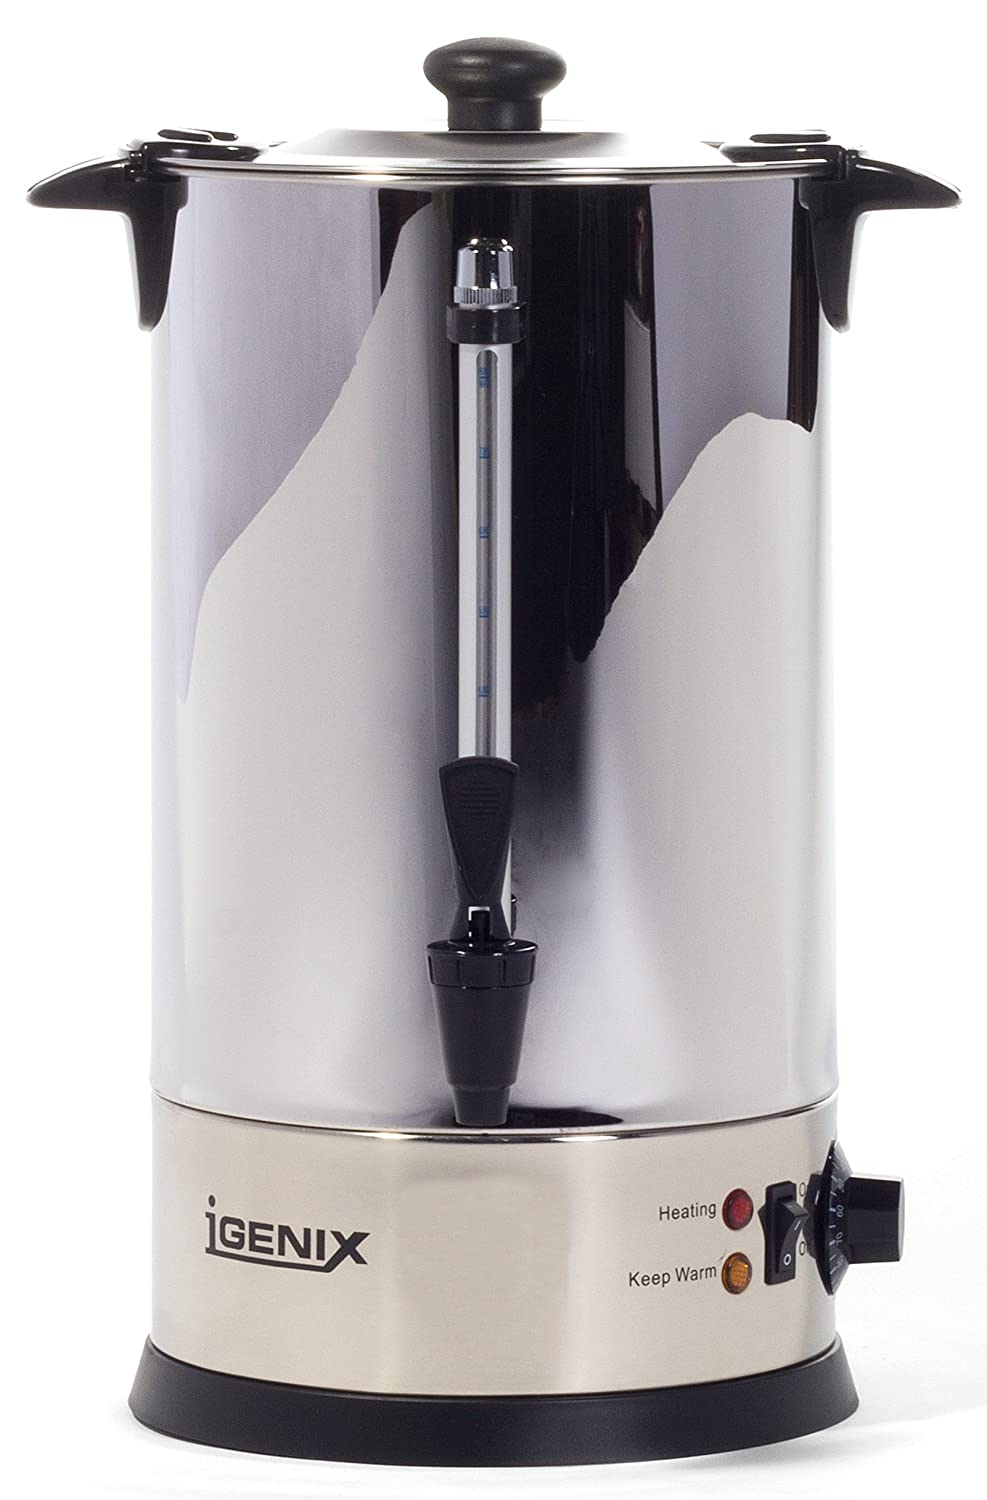 Igenix IG4008 Catering Urn, Hot Water Boiler, Tea Urn for Home Brewing, Commercial or Office Use, 8 Litre, Stainless Steel